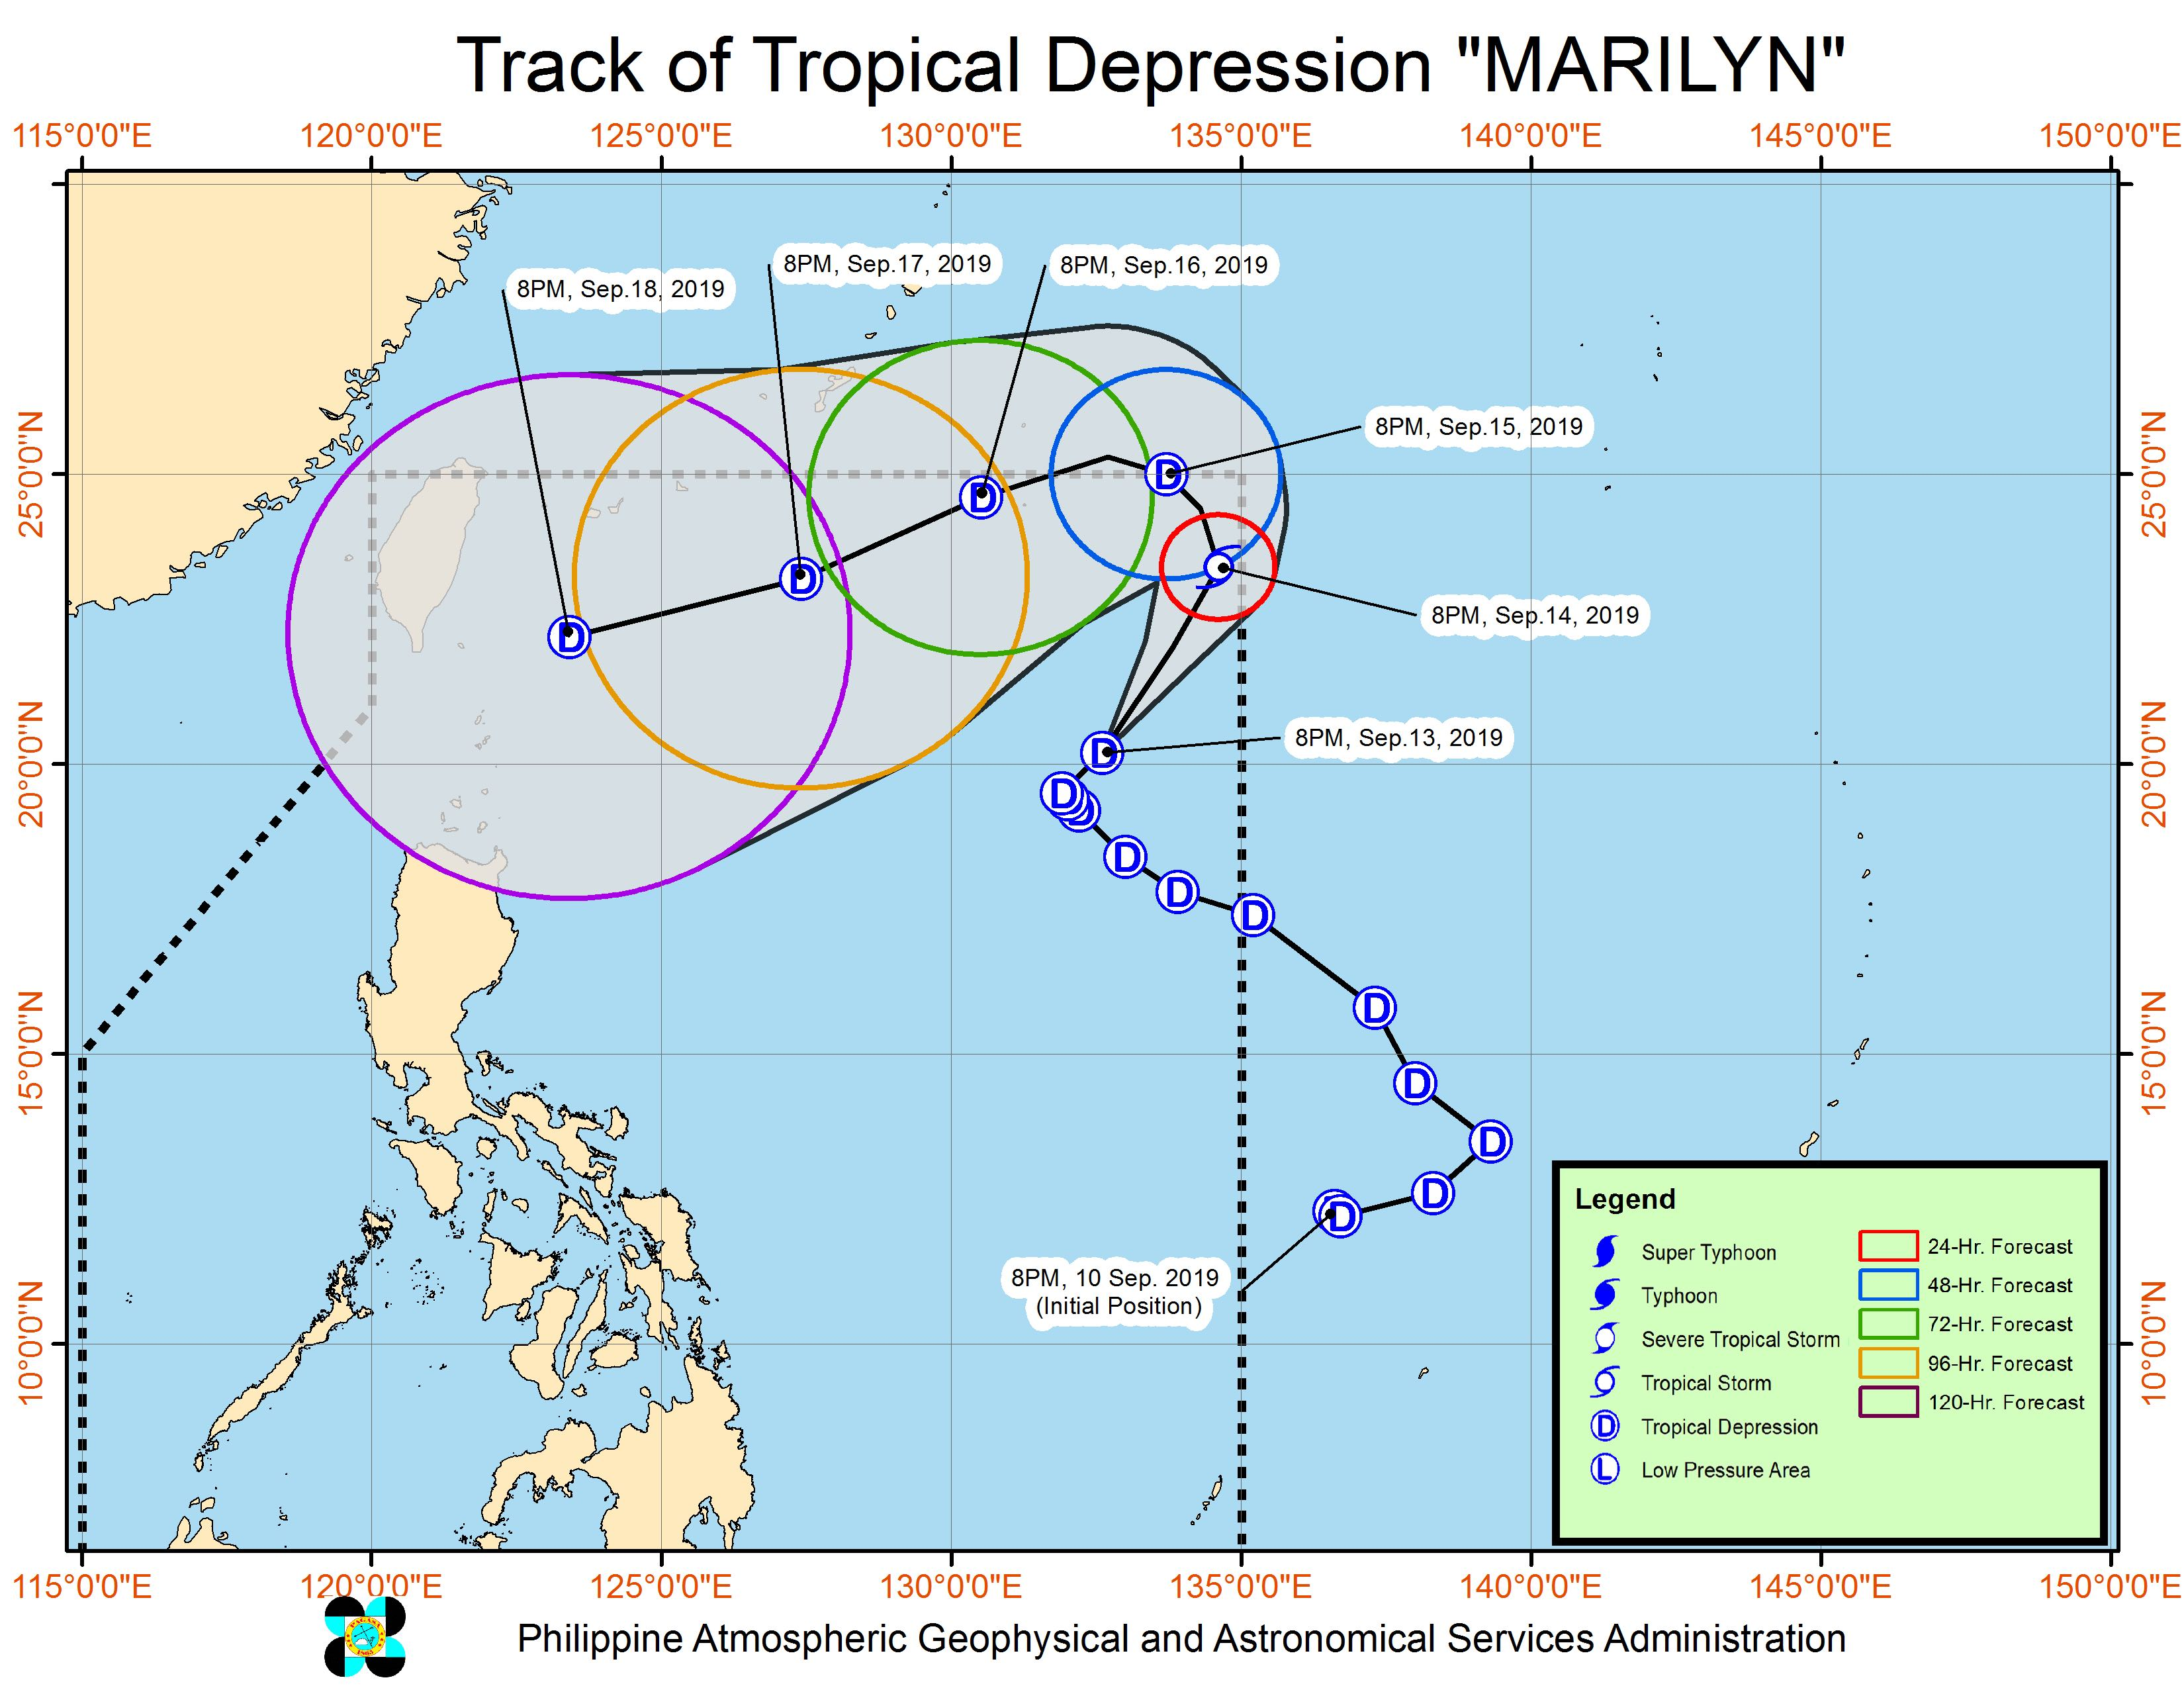 Forecast track of Tropical Depression Marilyn as of September 13, 2019, 11 pm. Image from PAGASA